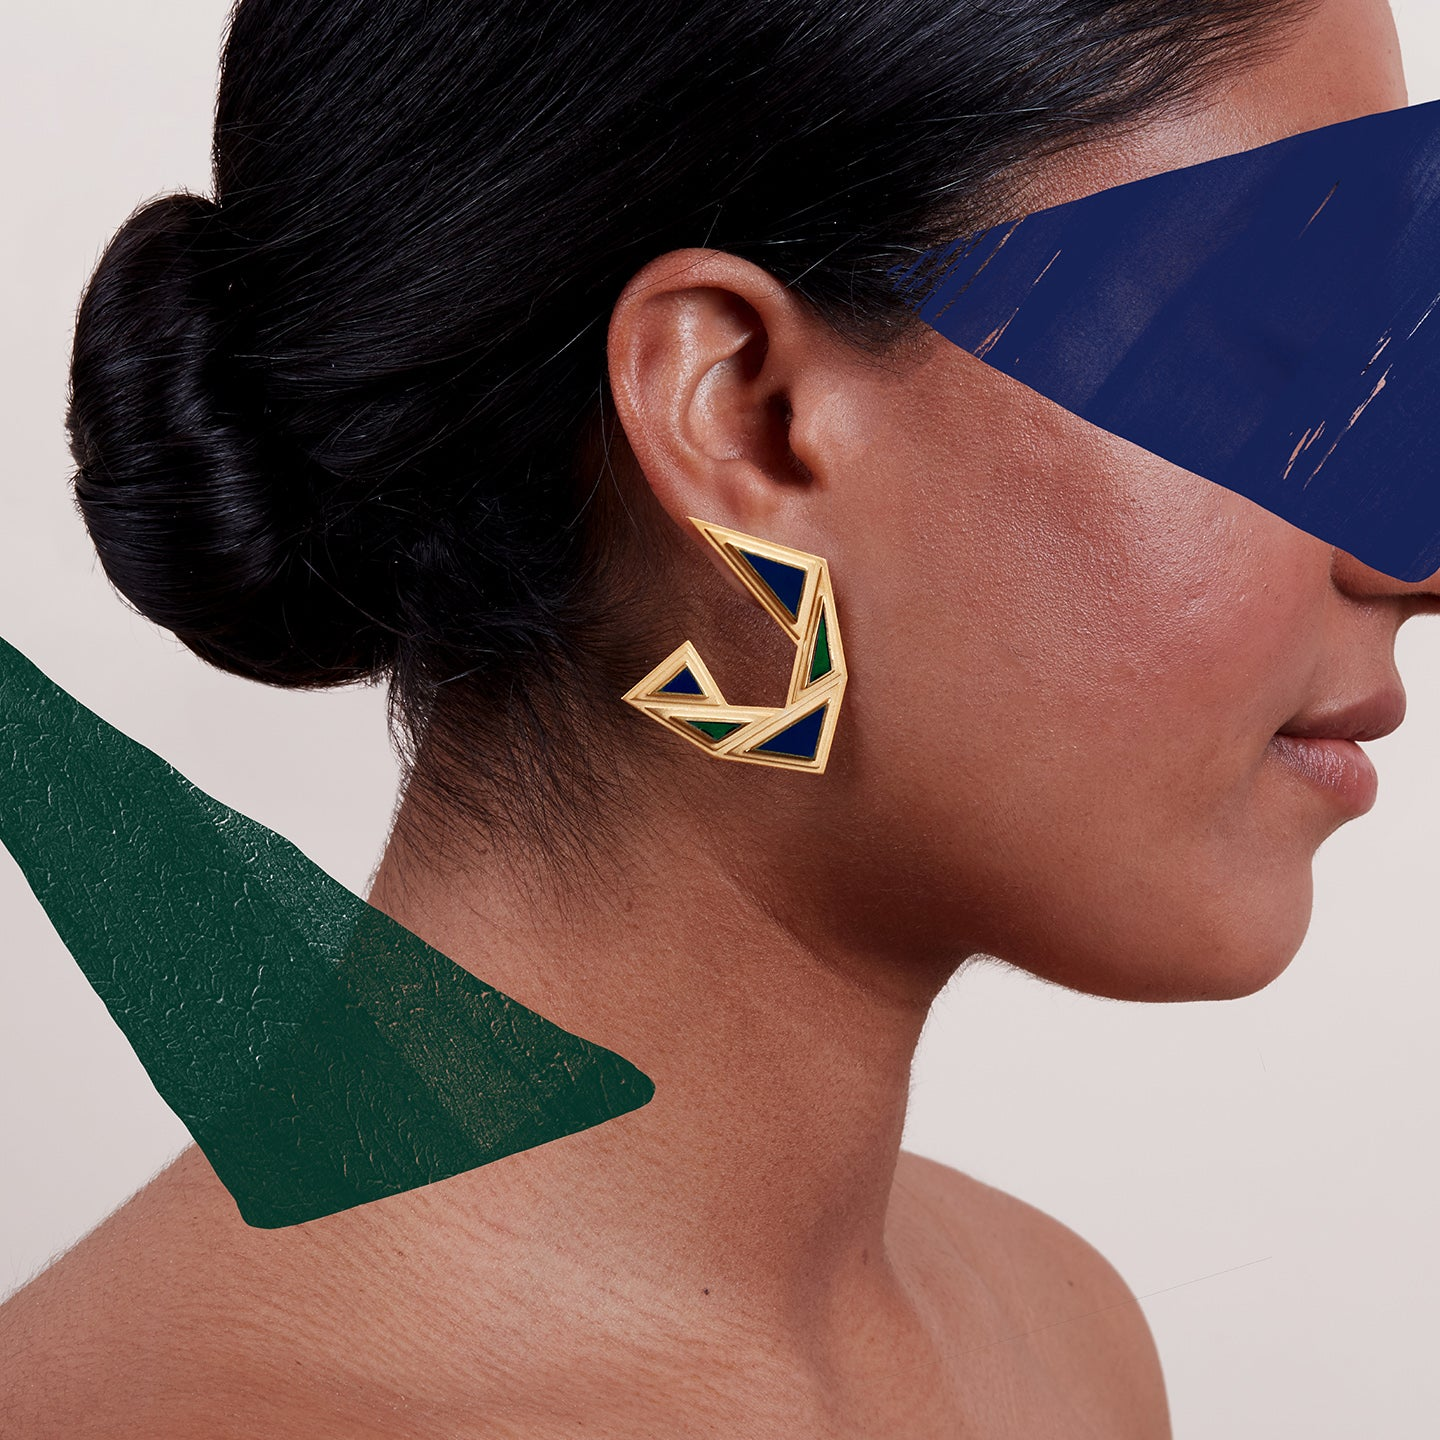 Erté Earrings in Gold Vermeil and Navy Blue Enamel